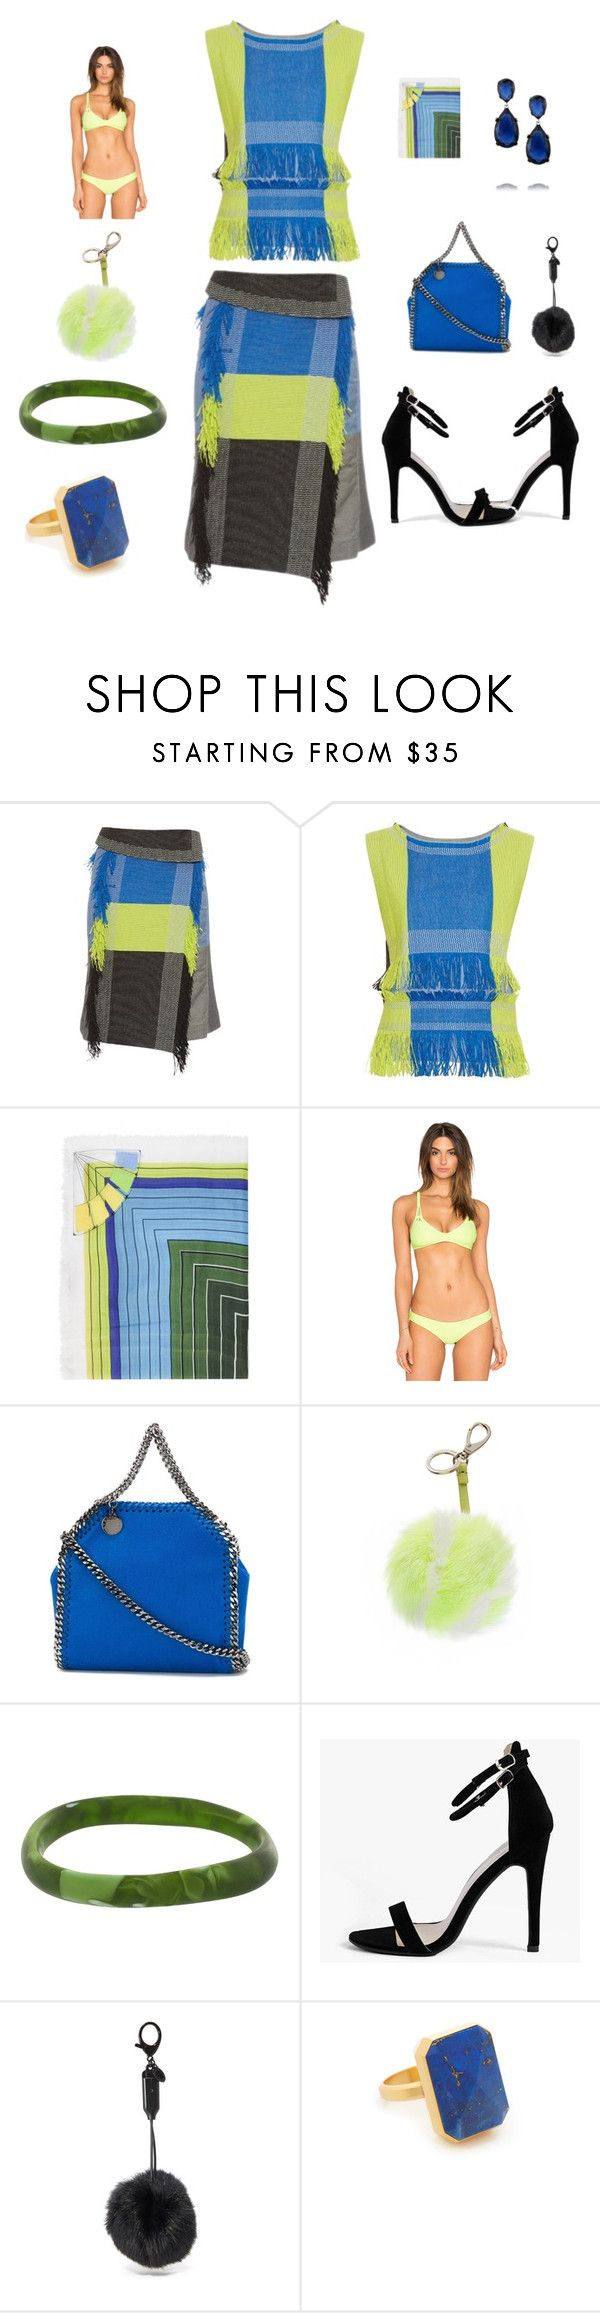 """Boost your Look"" by camry-brynn ❤ liked on Polyvore featuring Issey Miyake, Mary Katrantzou, Frankie's Bikinis, STELLA McCARTNEY, Anya Hindmarch, Dinosaur Designs, Boohoo, Rebecca Minkoff, Ringly and Kenneth Jay Lane"